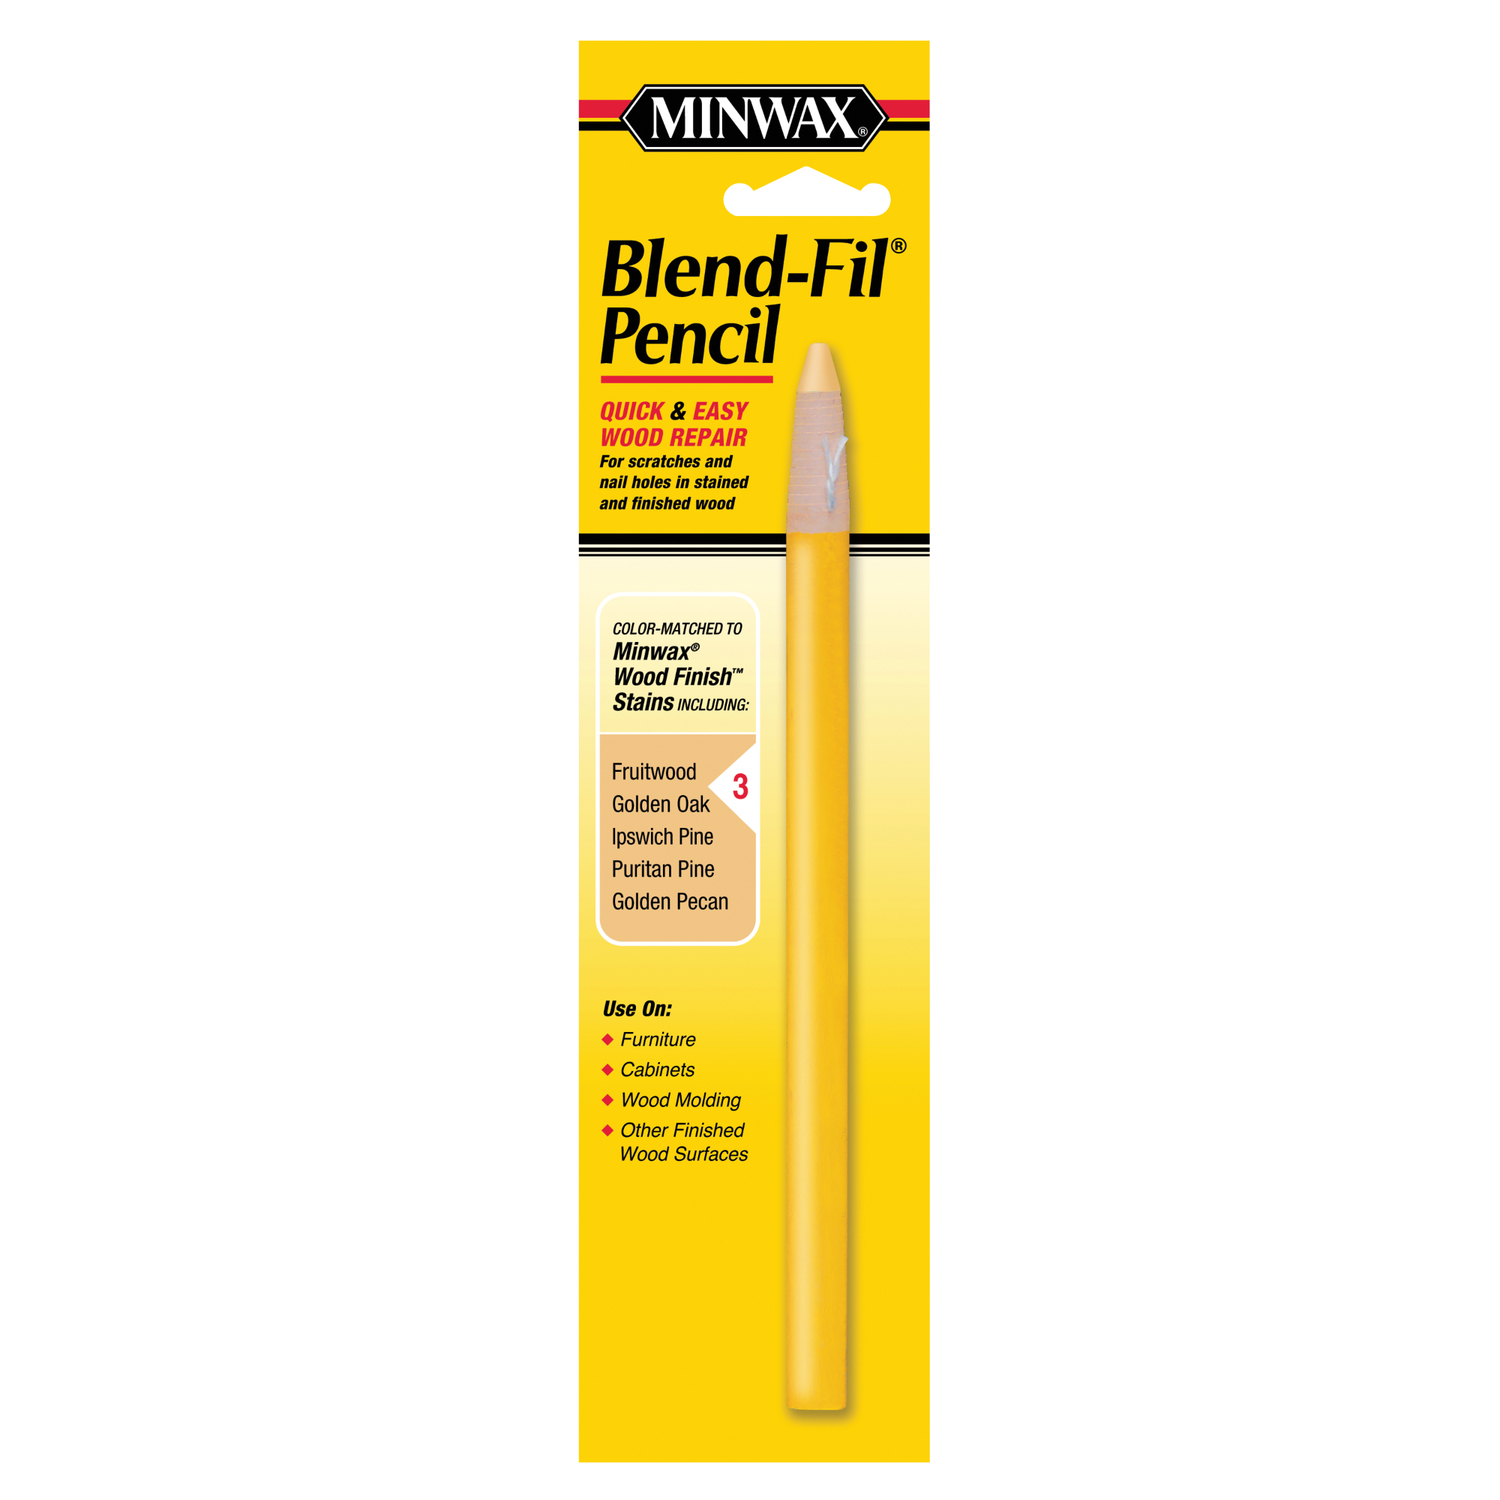 Minwax  Blend-Fil No. 3  Fruitwood, Golden Oak, Golden Pecan, Pine,Puritan  Wood Pencil  1 oz.